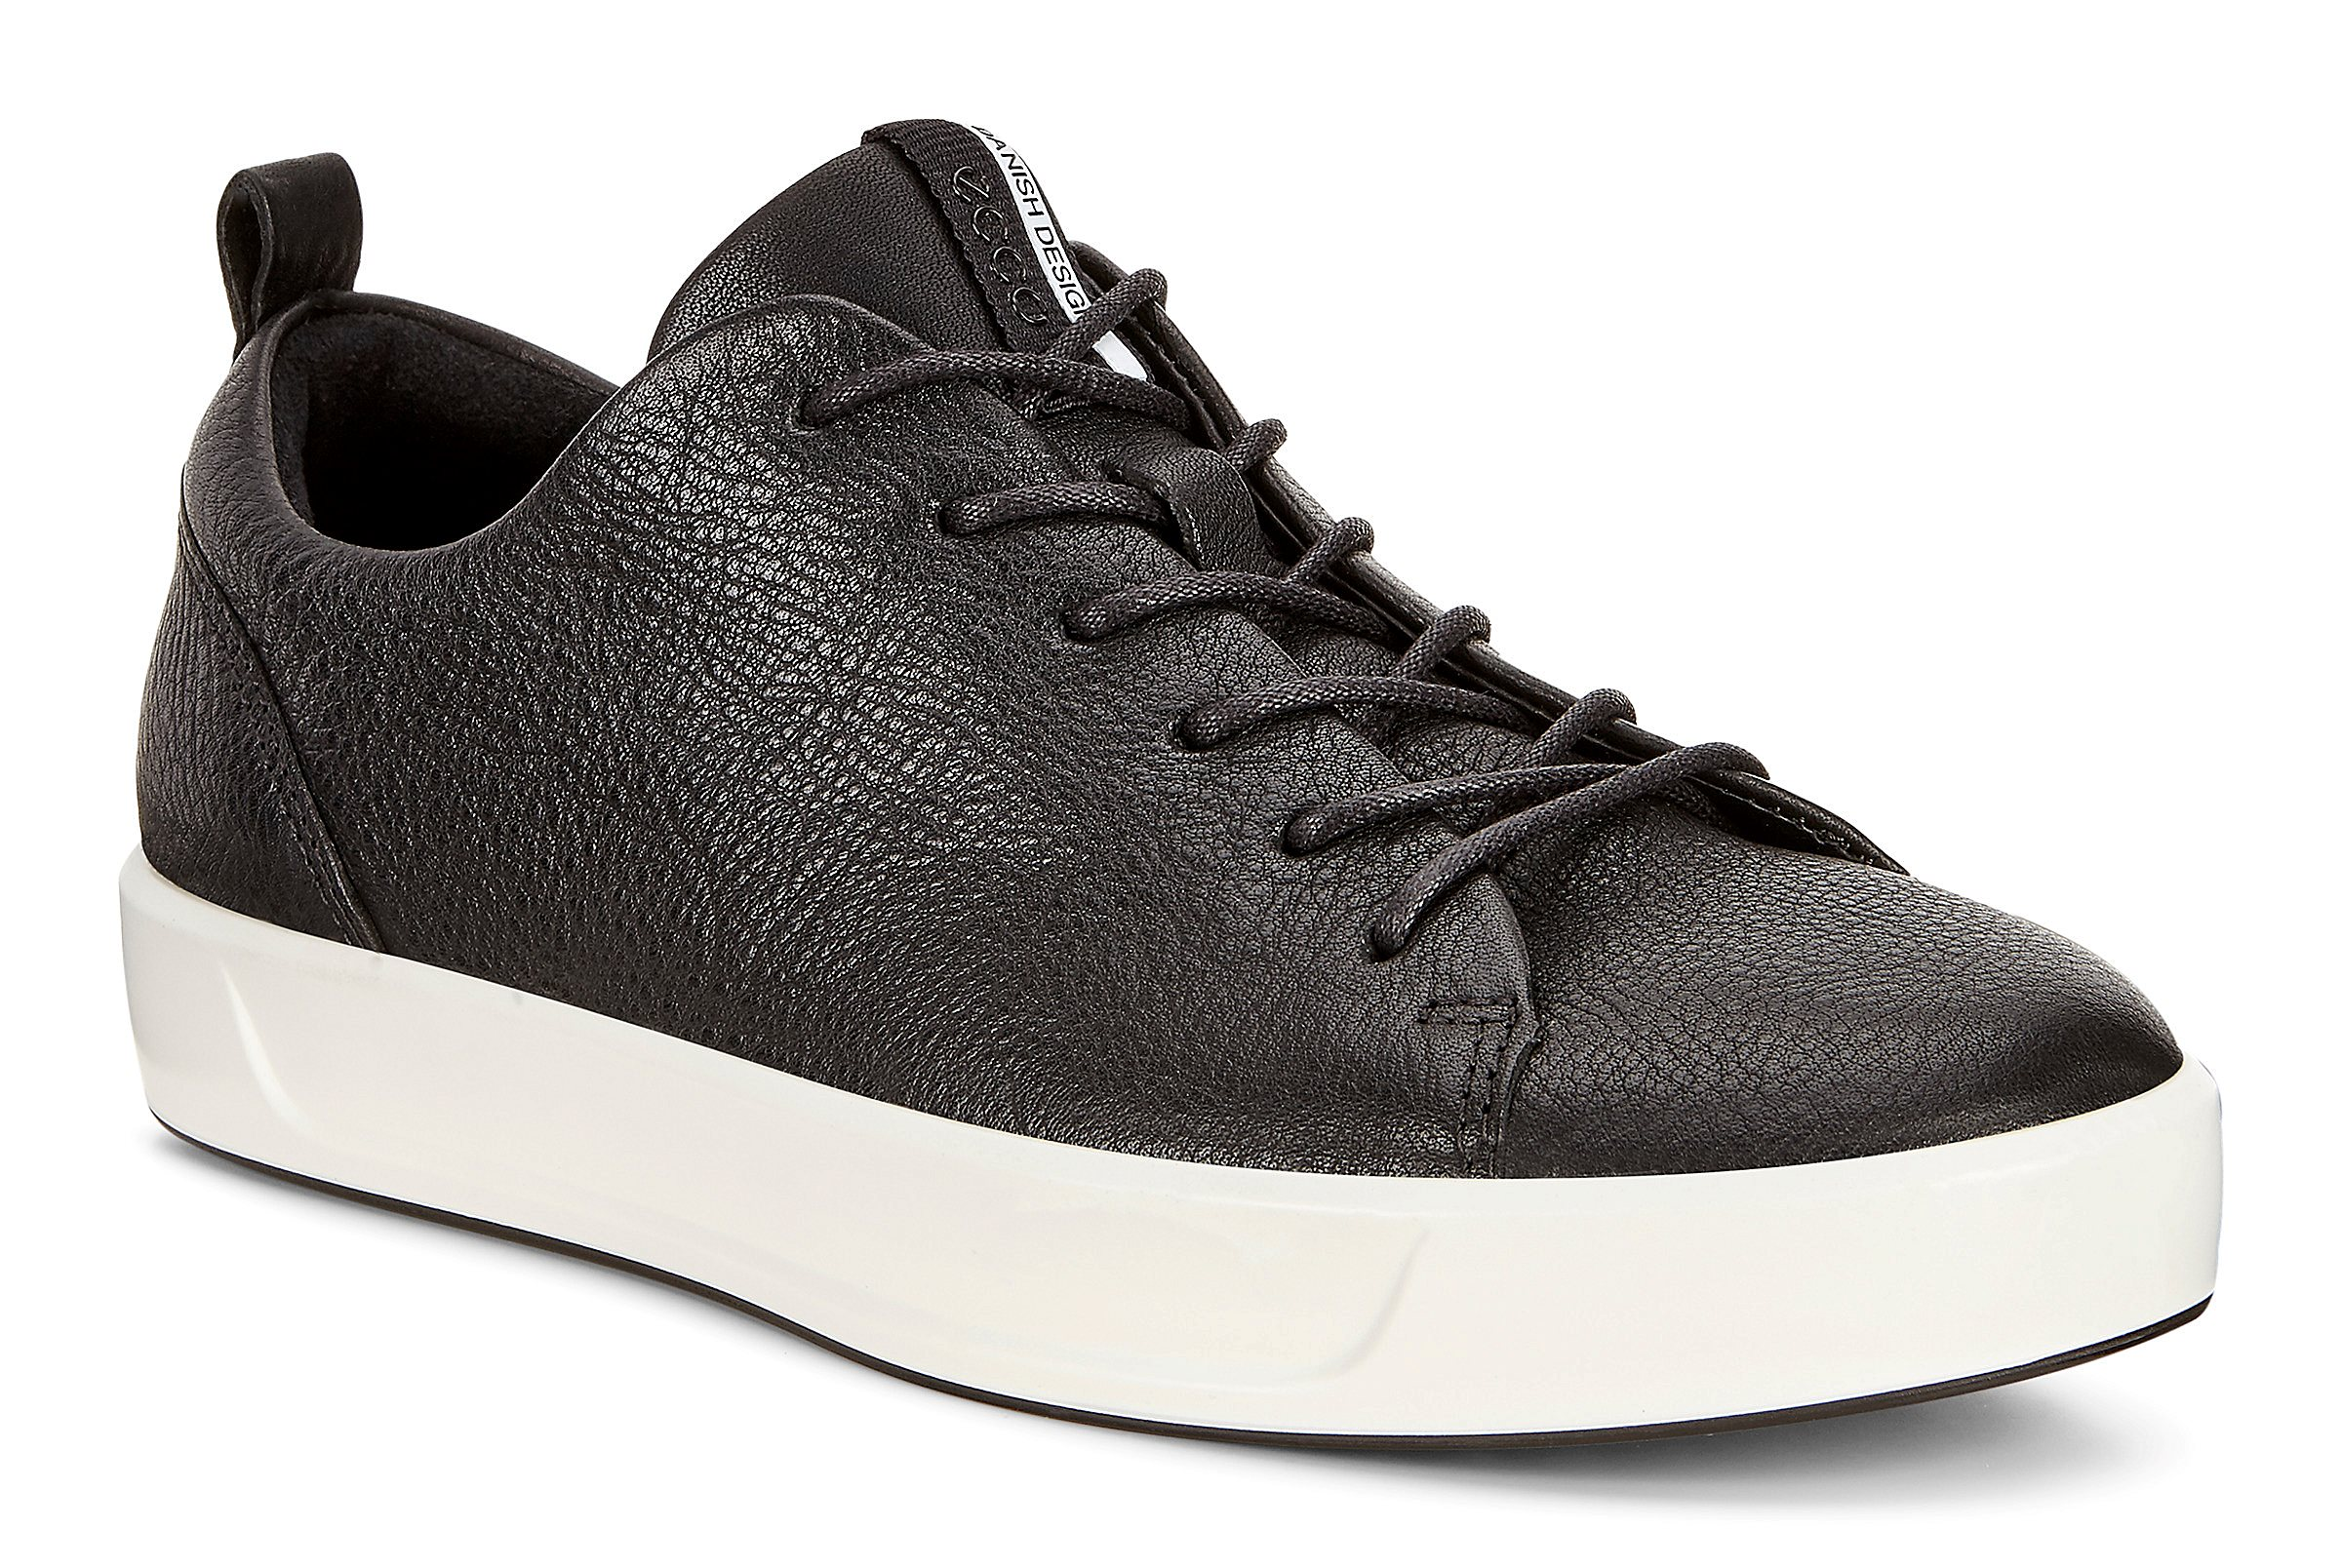 a78587d3 ECCO SOFT 8 W | SNEAKERS | SHOES | WOMEN | ECCO® OFFICIAL ONLINE STORE